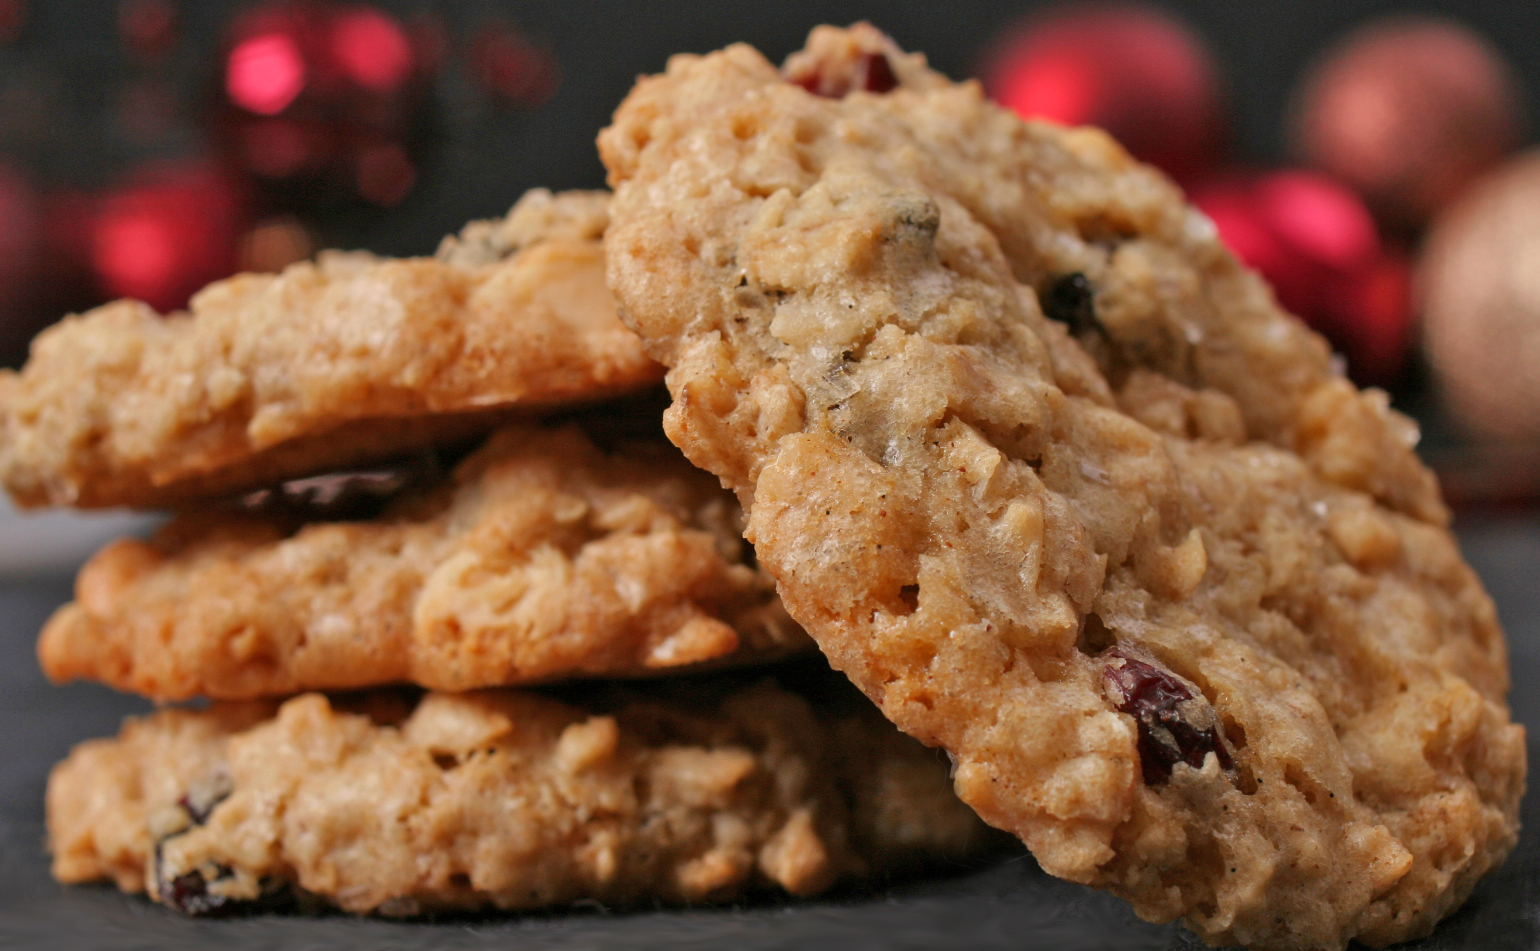 Oatmeal applesauce no bake cookie | oatmeal applesauce no bake cookie ...